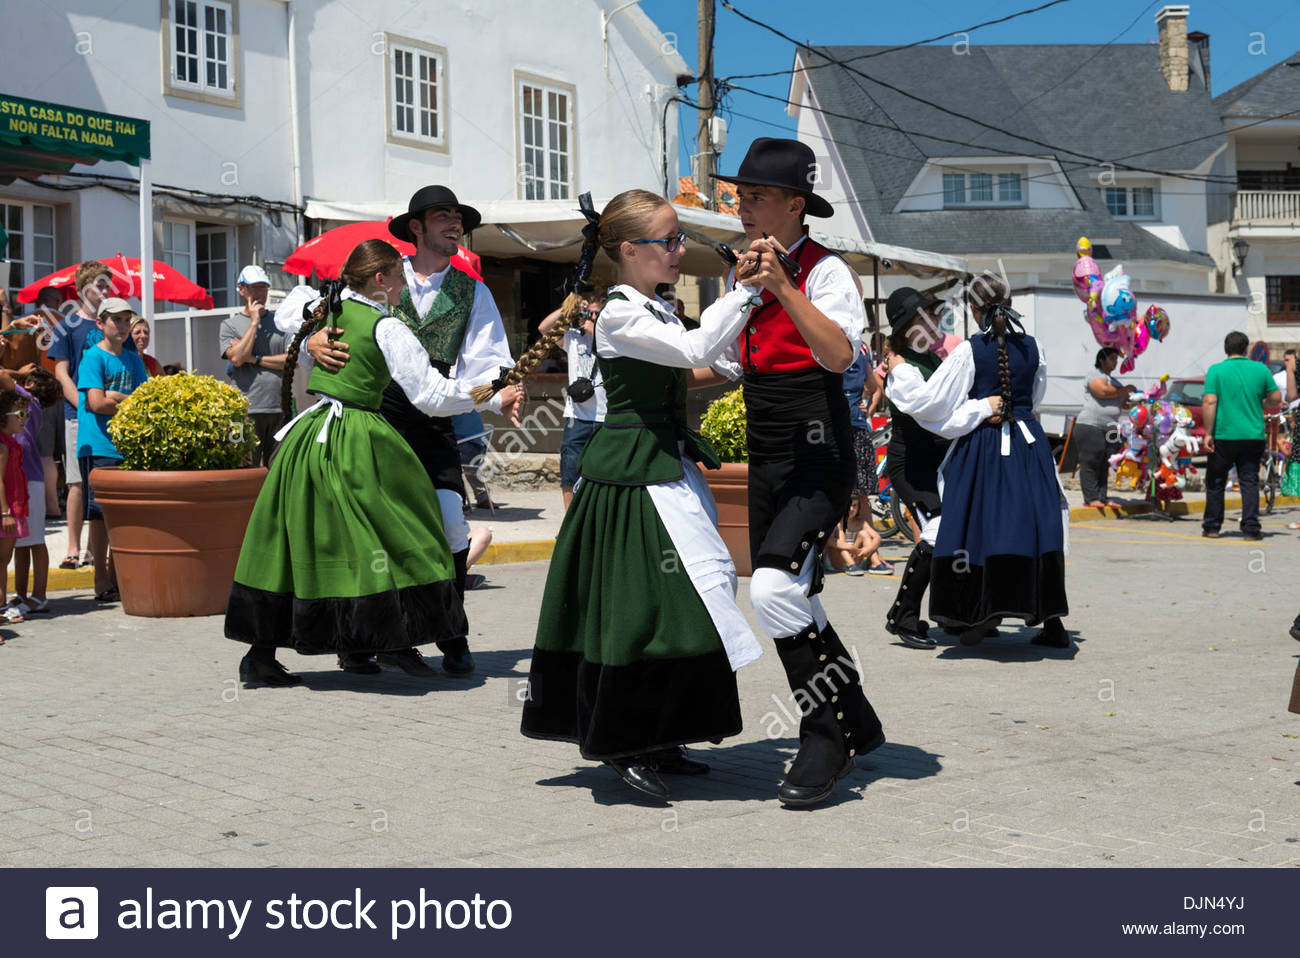 Young people performing traditional folk dance during annual fiestas, Corrubedo, Galicia, Spain - Stock Image